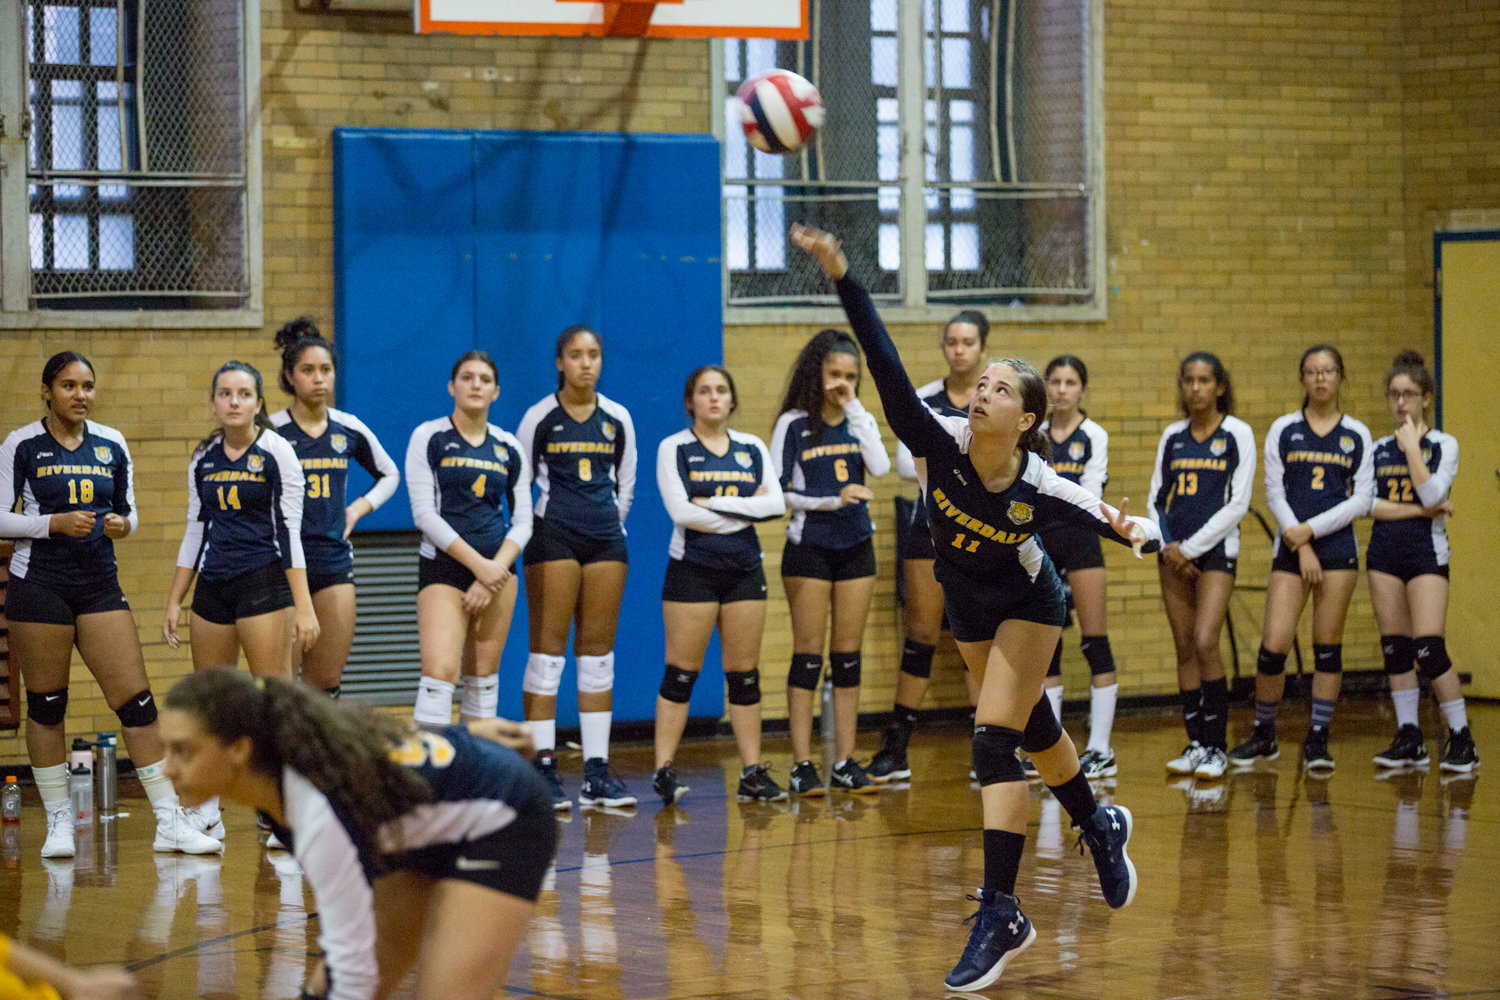 Riverdale/Kingsbridge Academy freshman Adelina Elezaj contributed six kills and an ace in the Lady Tigers 25-16, 25-4 victory over South Bronx last week.